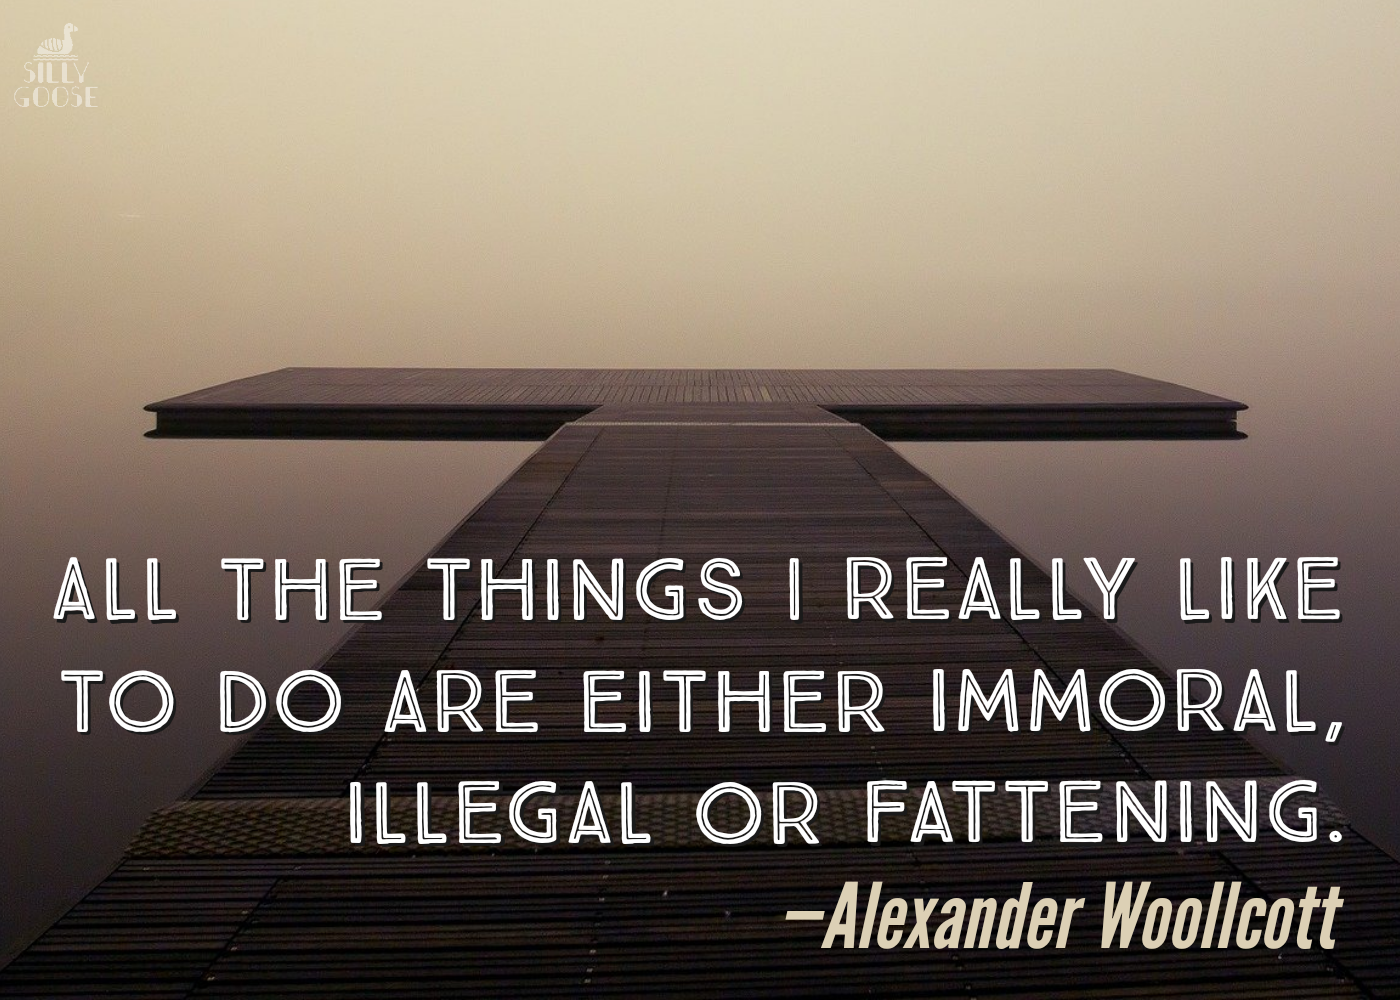 """All the things I really like to do are either immoral, illegal or fattening."" —Alexander Woollcott [1400×1000]"